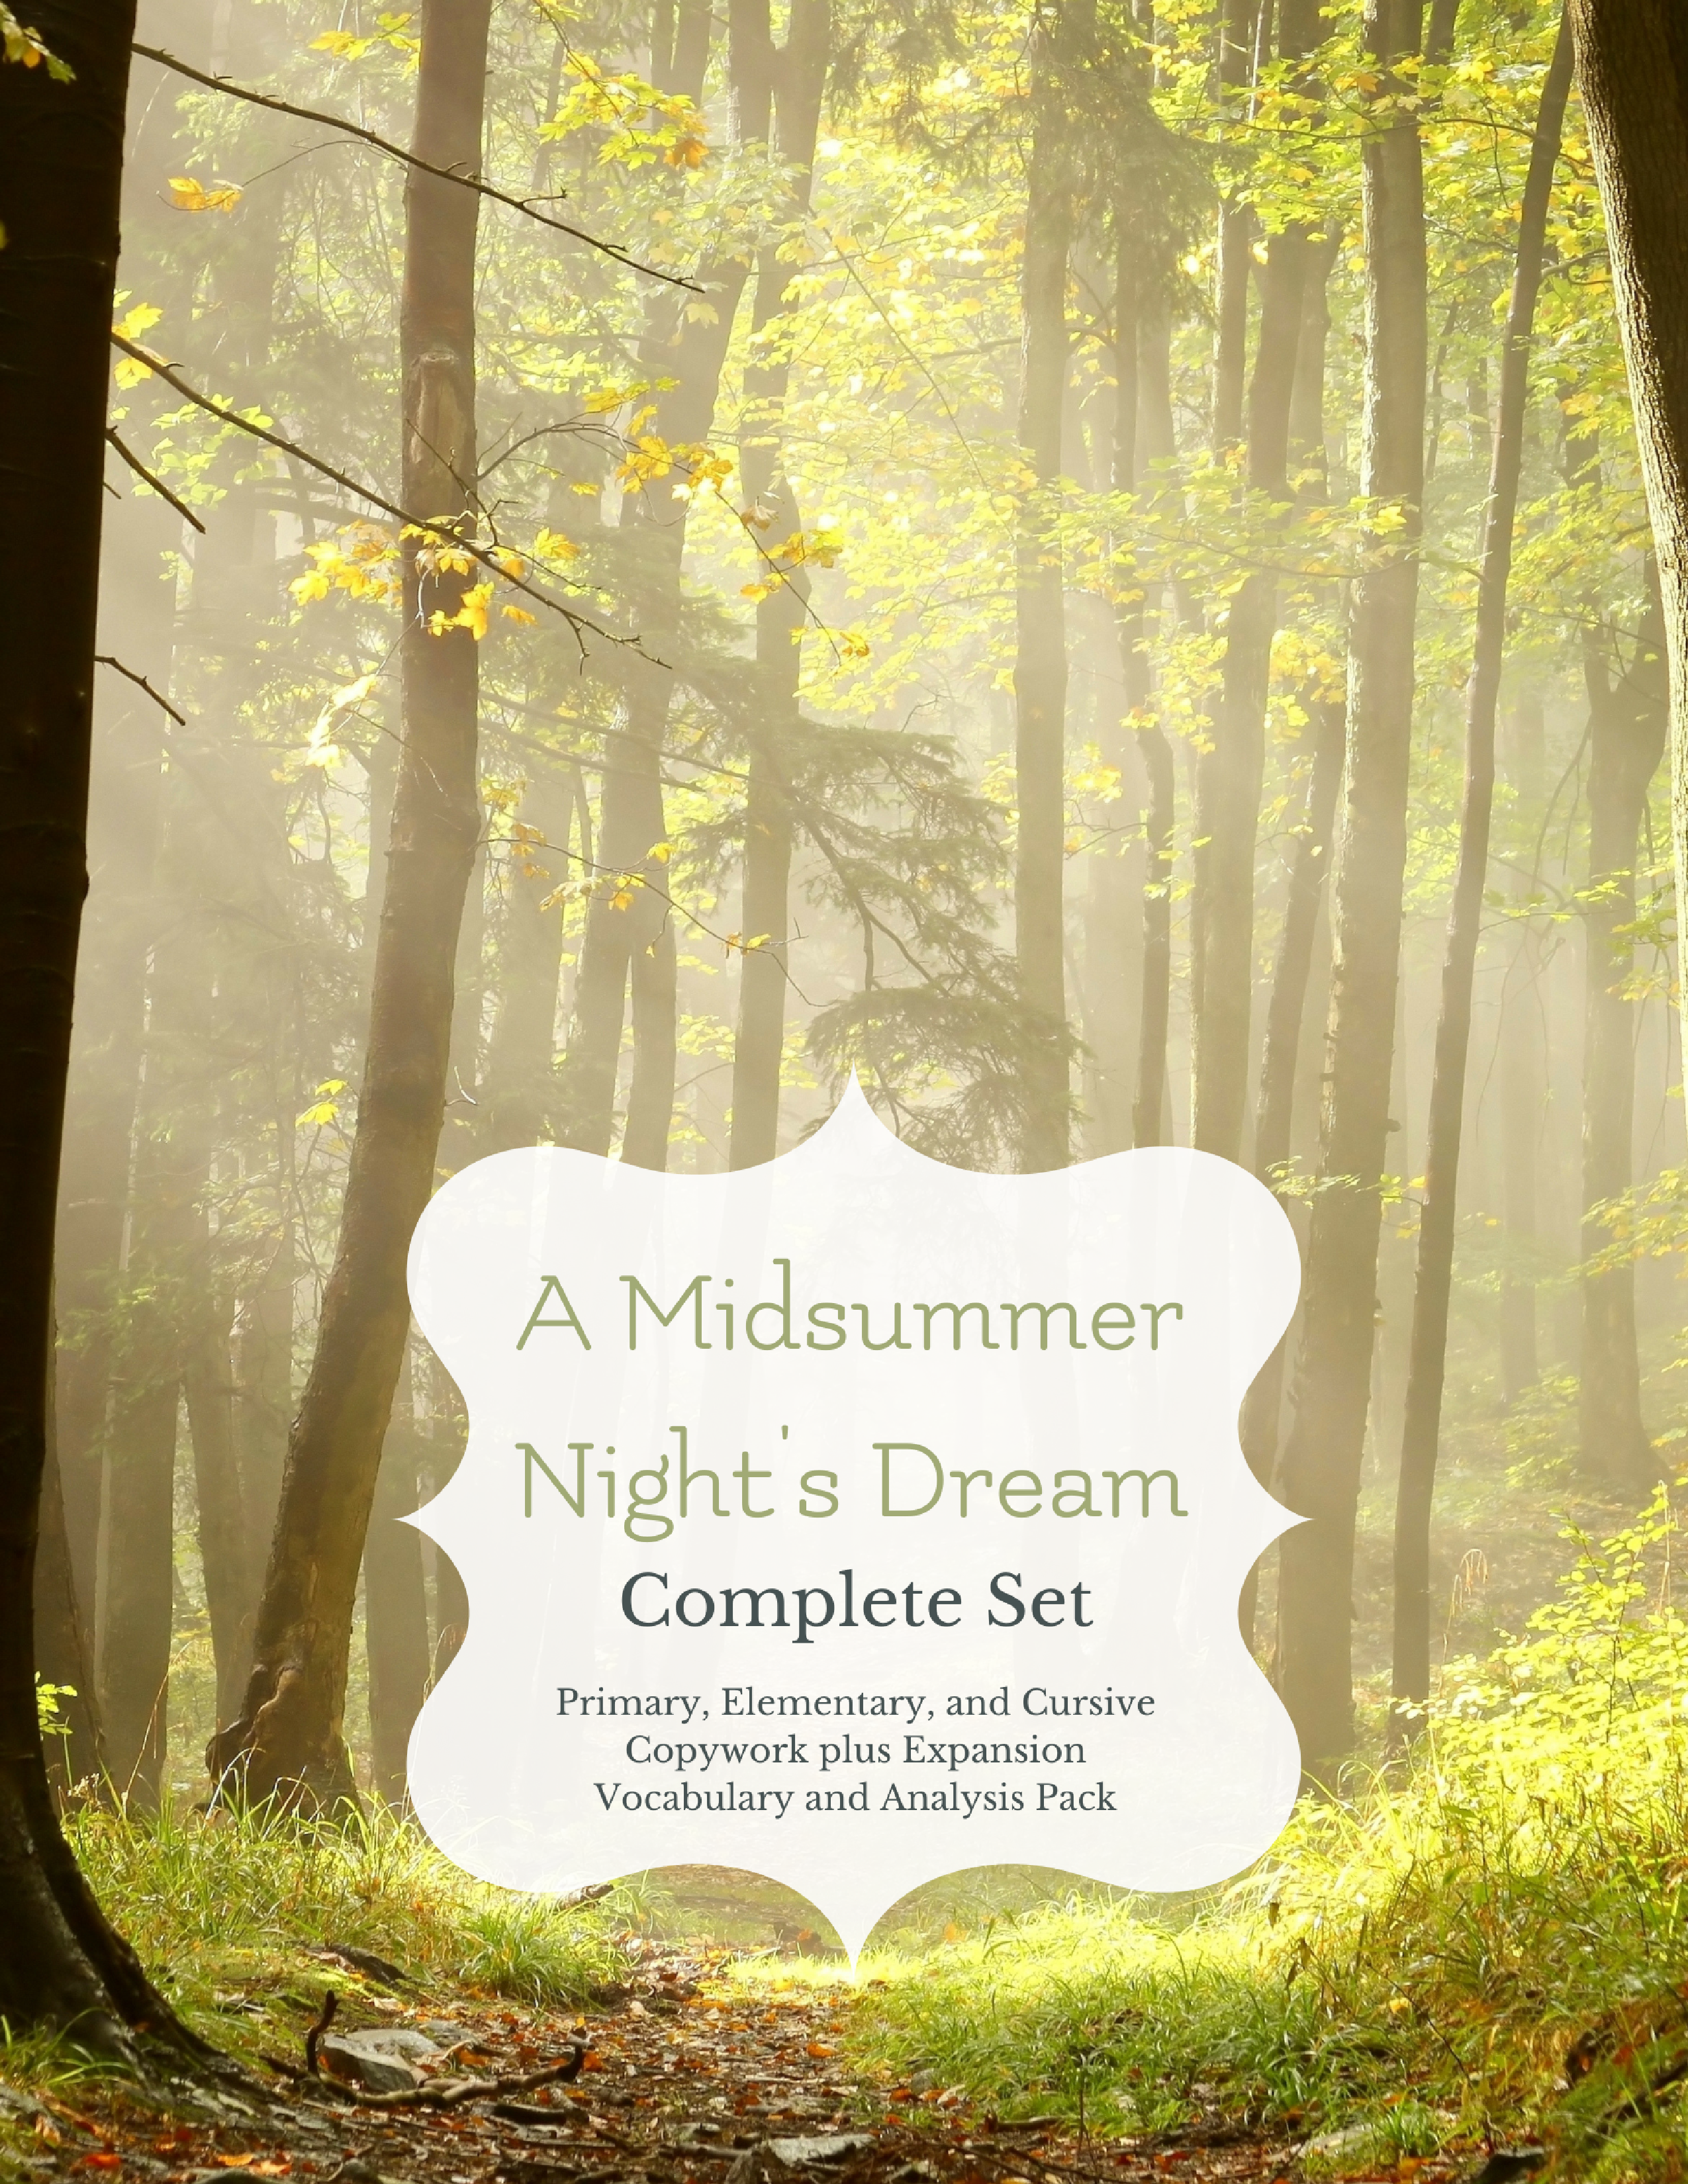 Explore the world of A Midsummer Night's Dream with copywork in primary, elementary, and cursive versions as well as character analysis and vocabulary expansion